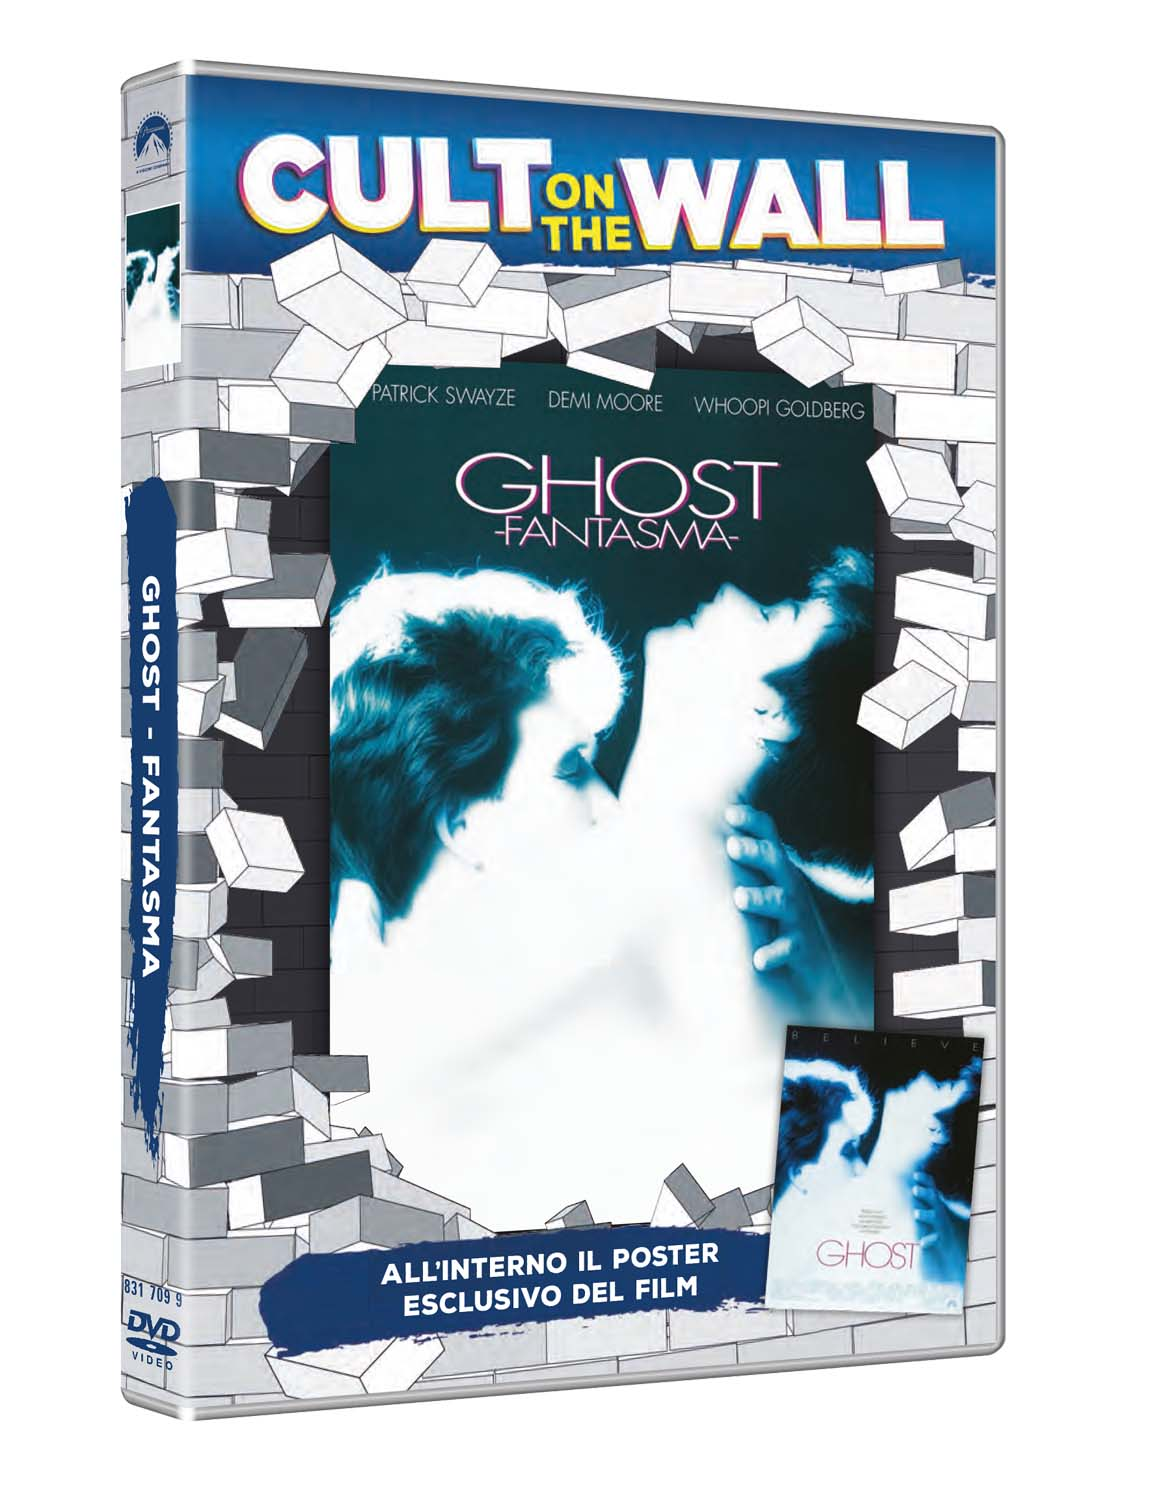 GHOST - FANTASMA (CULT ON THE WALL) (DVD+POSTER) (DVD)